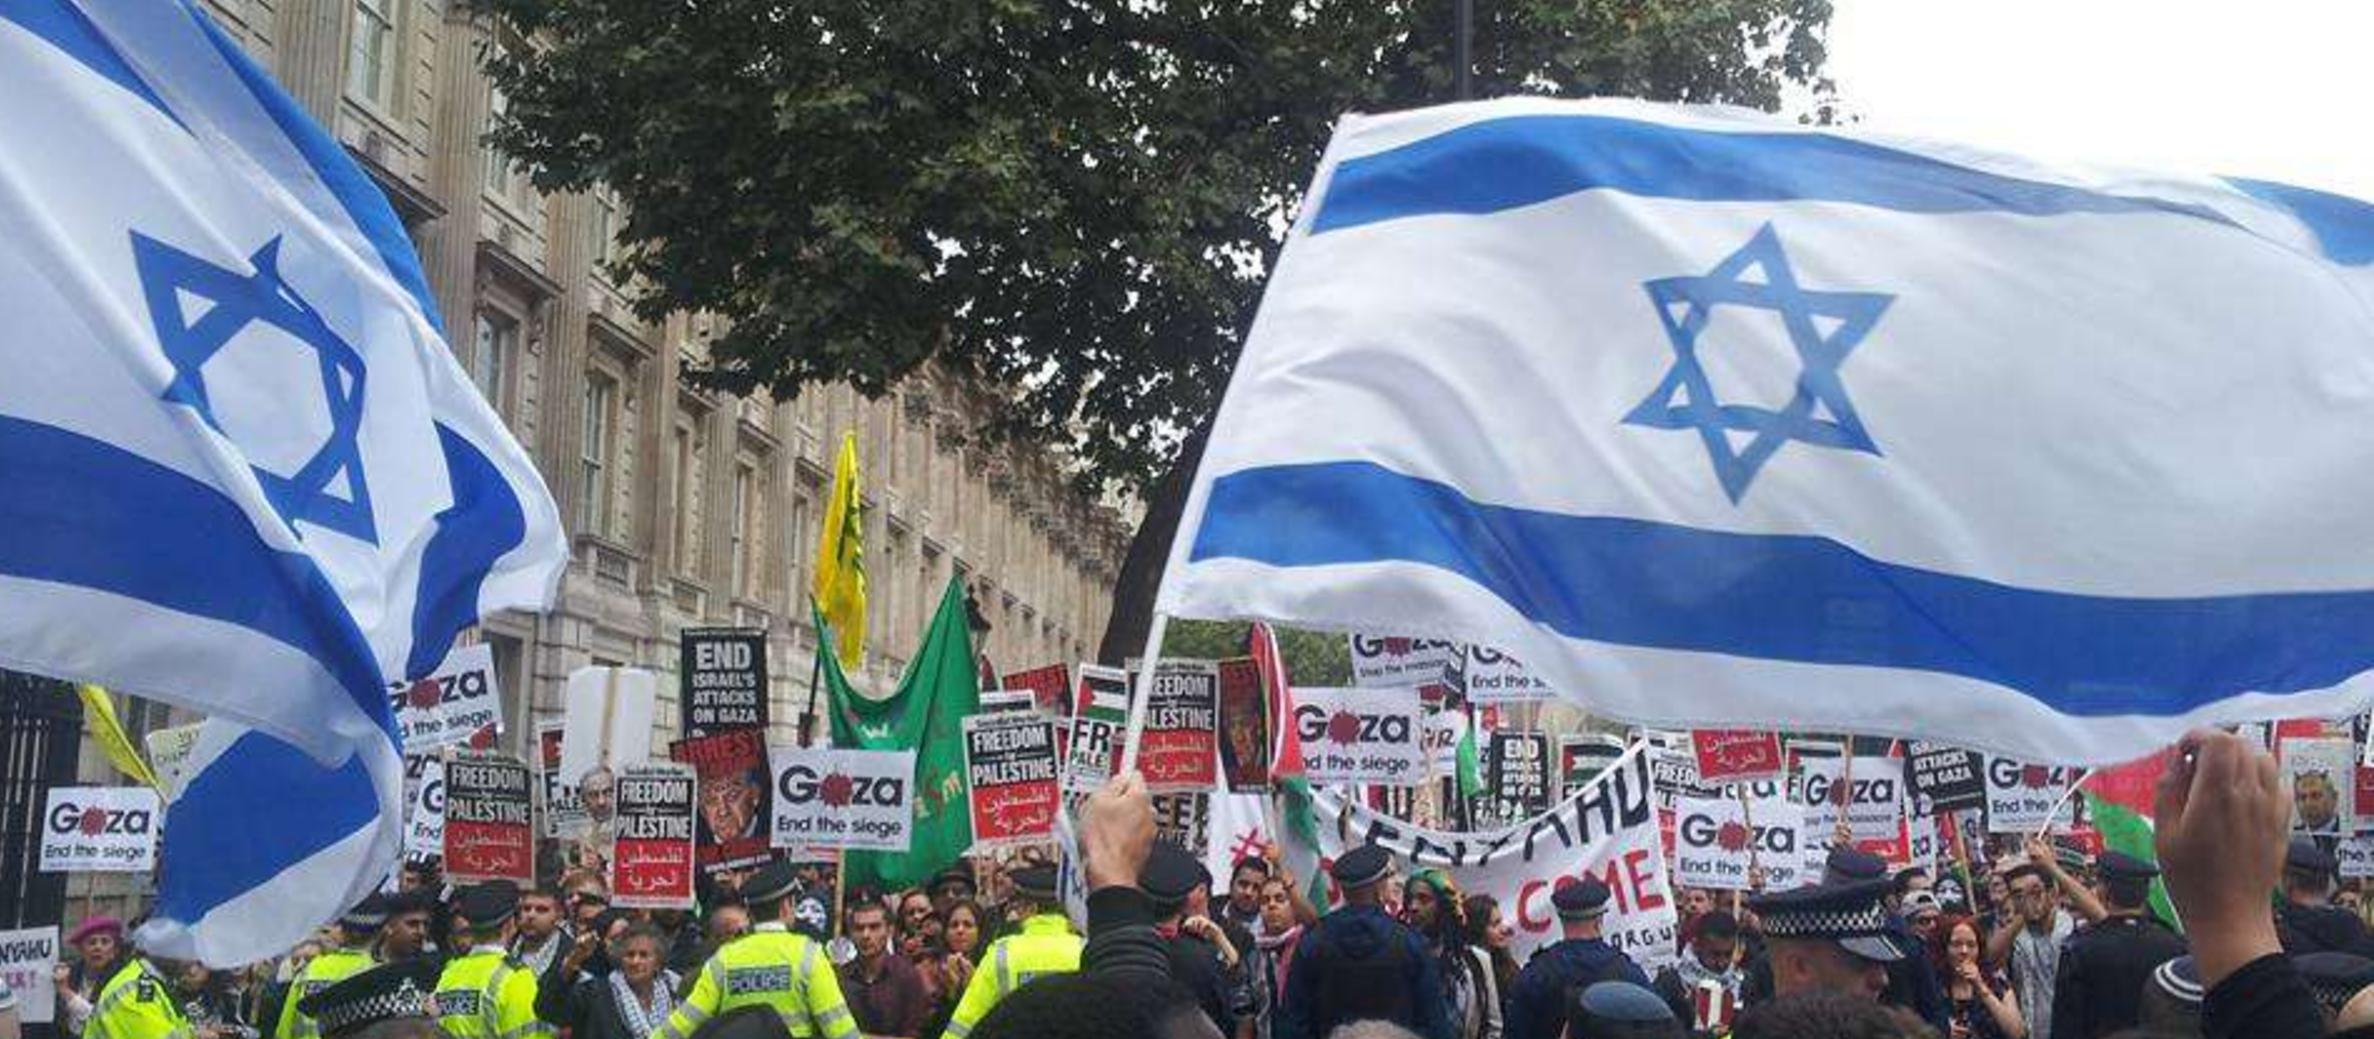 Protests surrounding Netanyahu visit show true face of anti-Israel movement